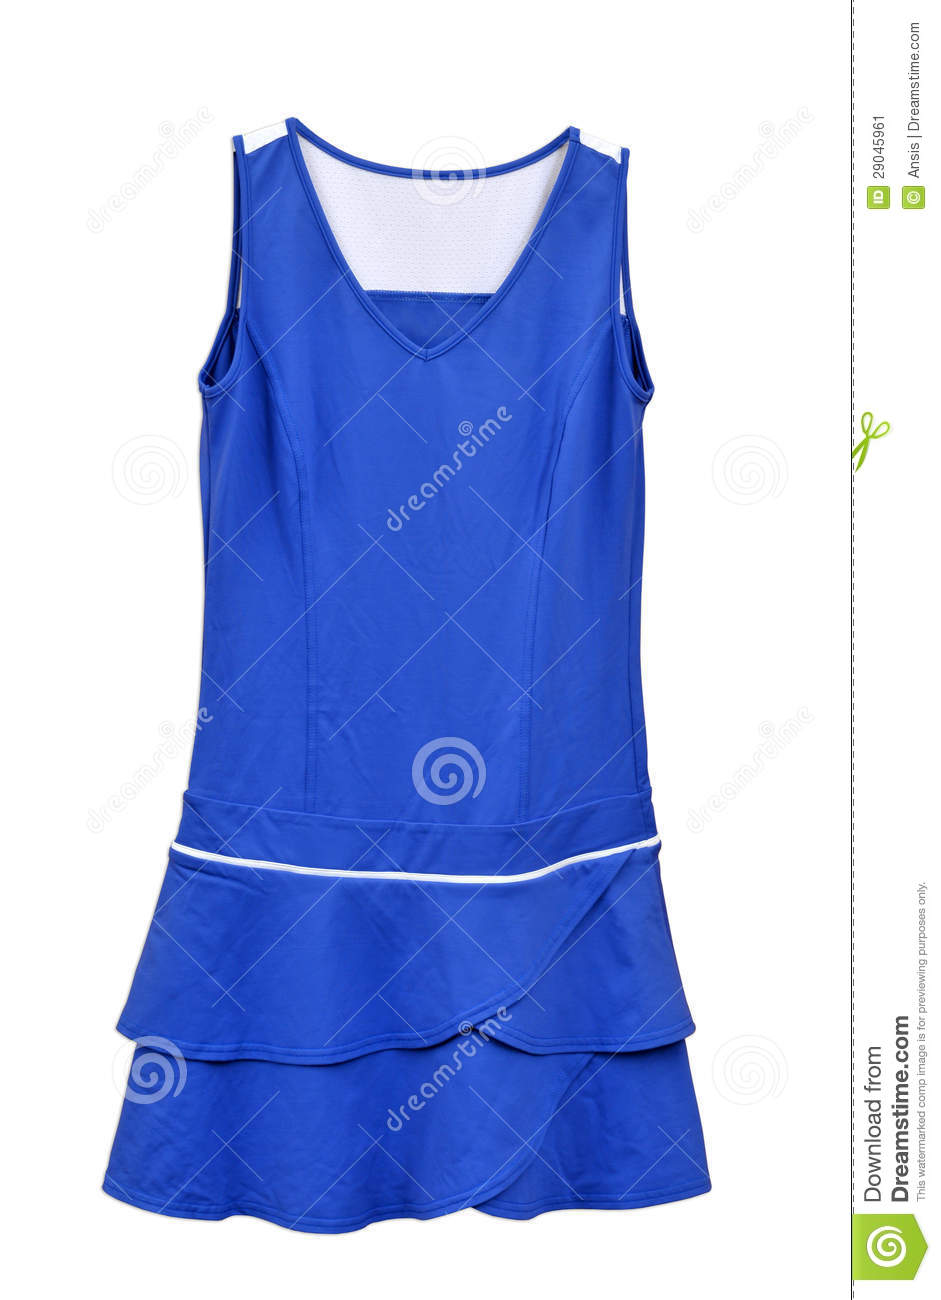 Stock Image: Tennis clothing for women